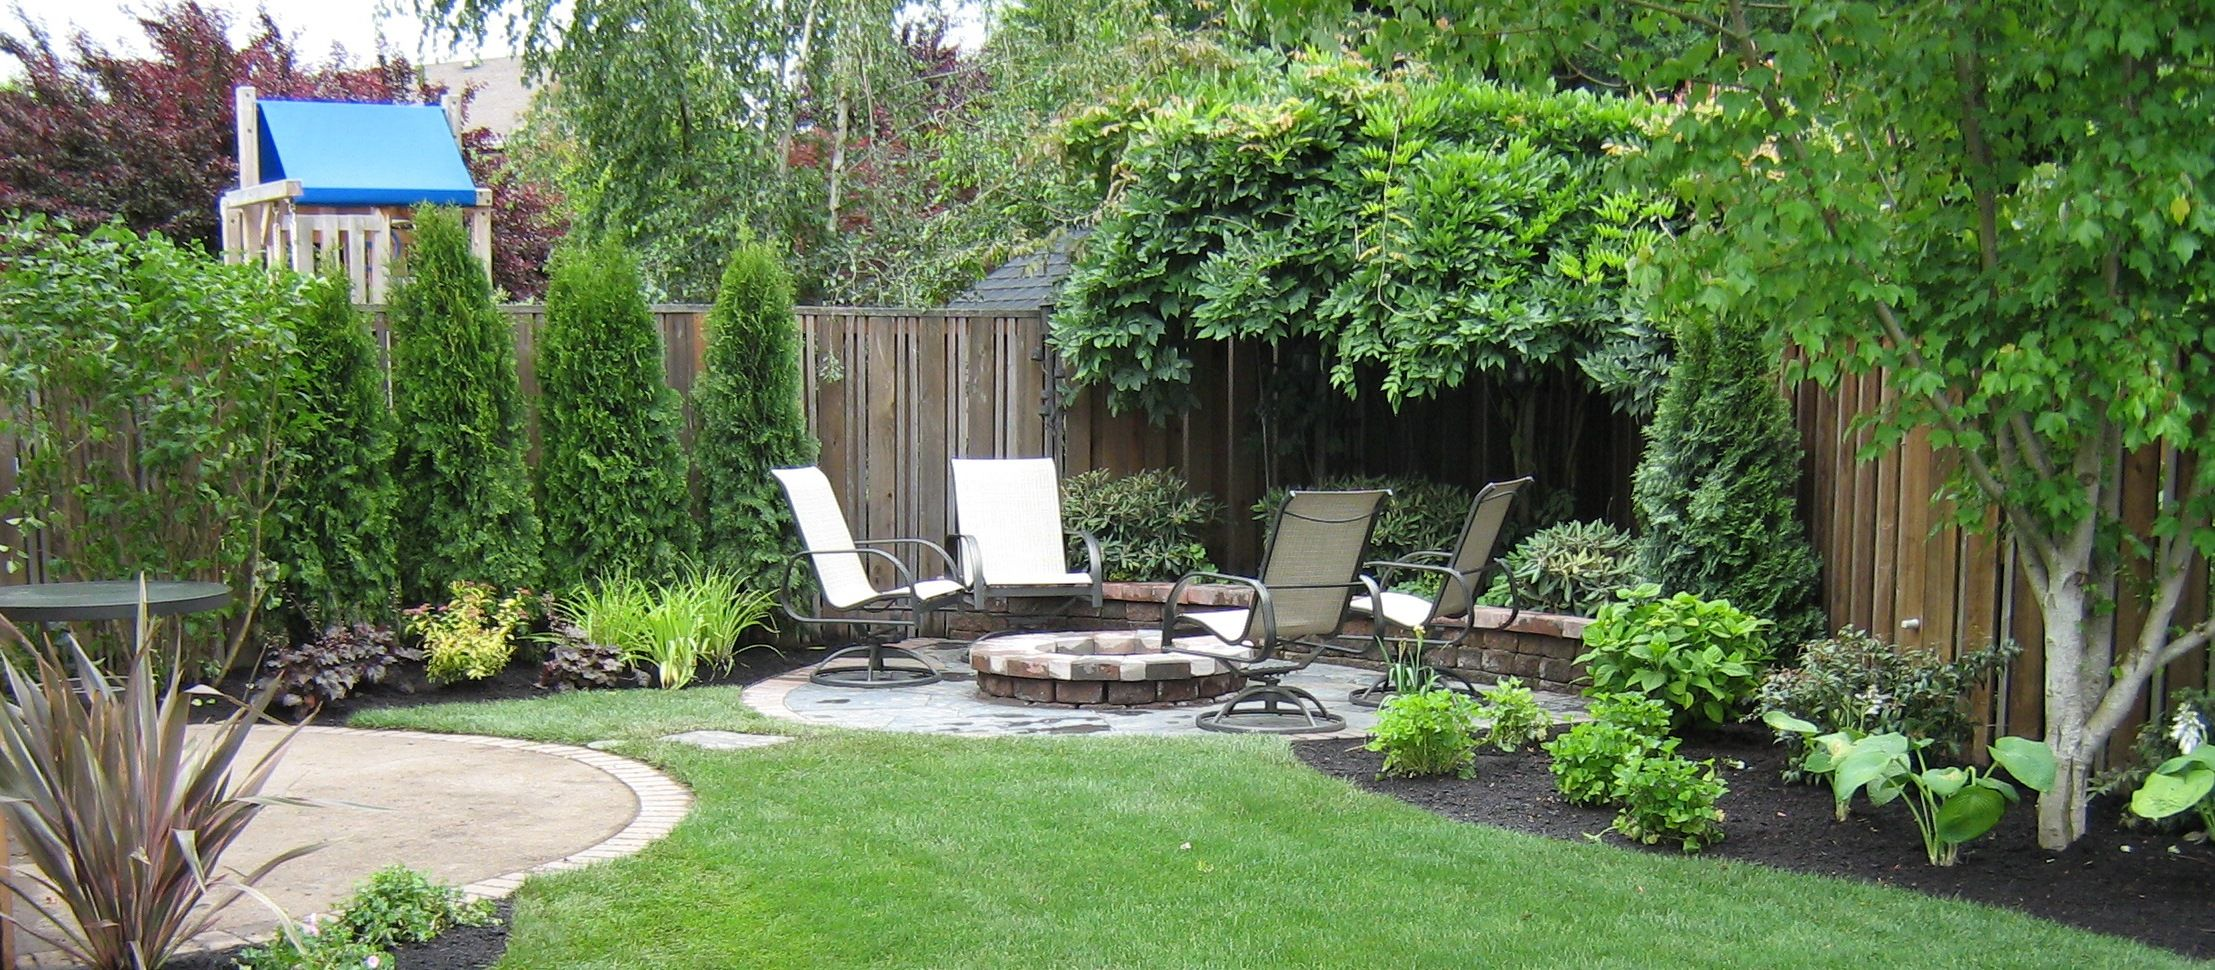 Small backyard landscaping ideas photos garden design for Small backyard ideas